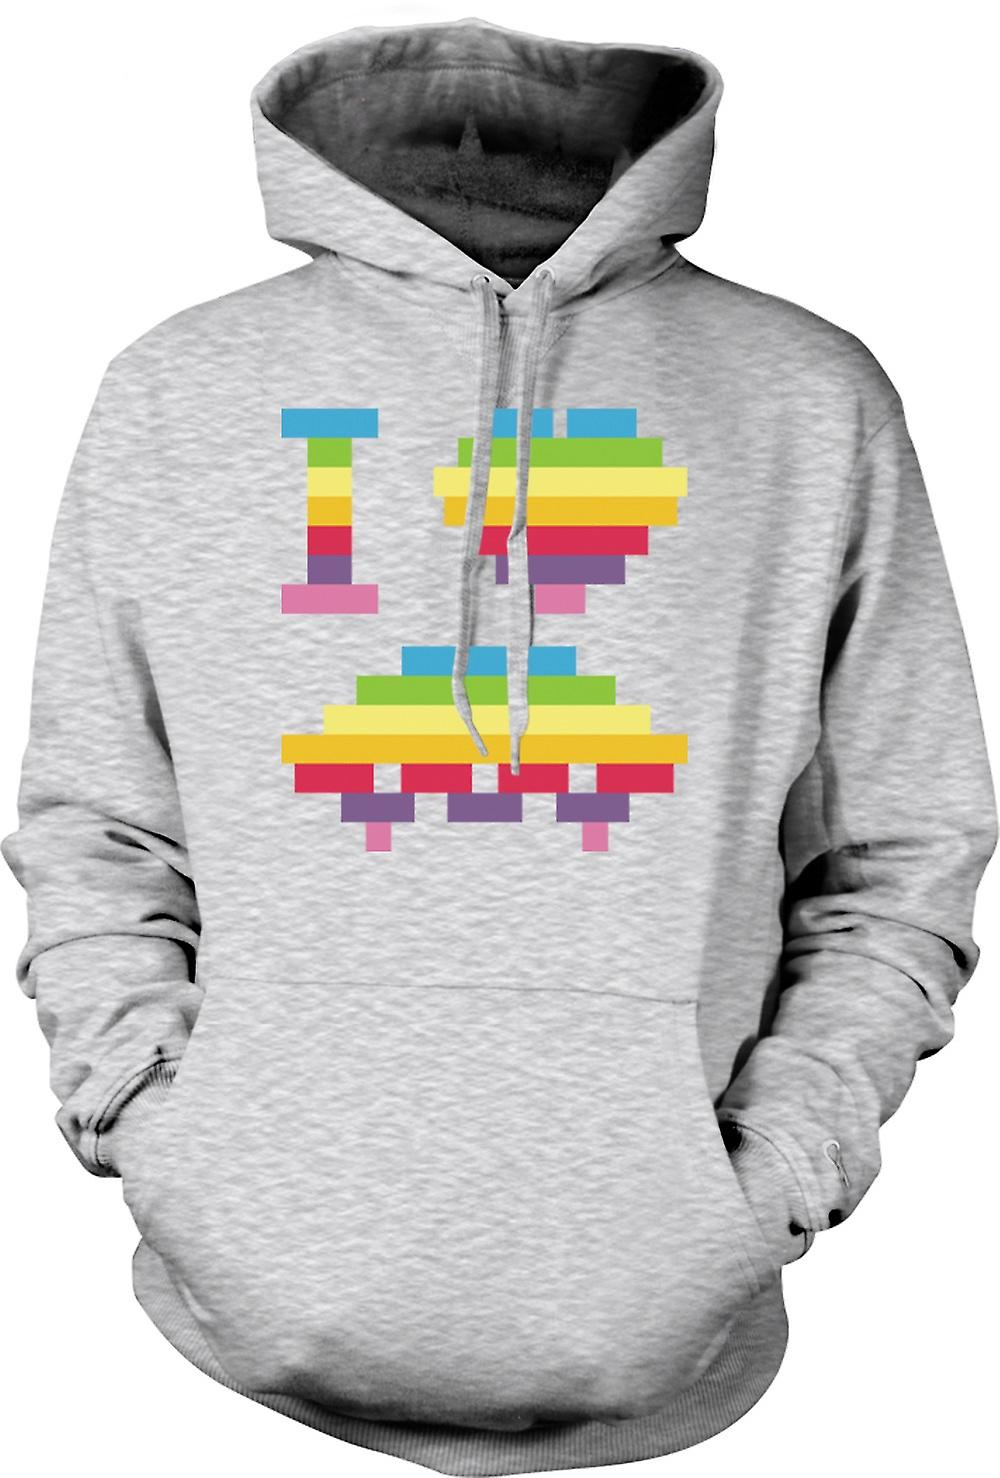 Mens Hoodie - I Love UFOs - Space Ship - Funny